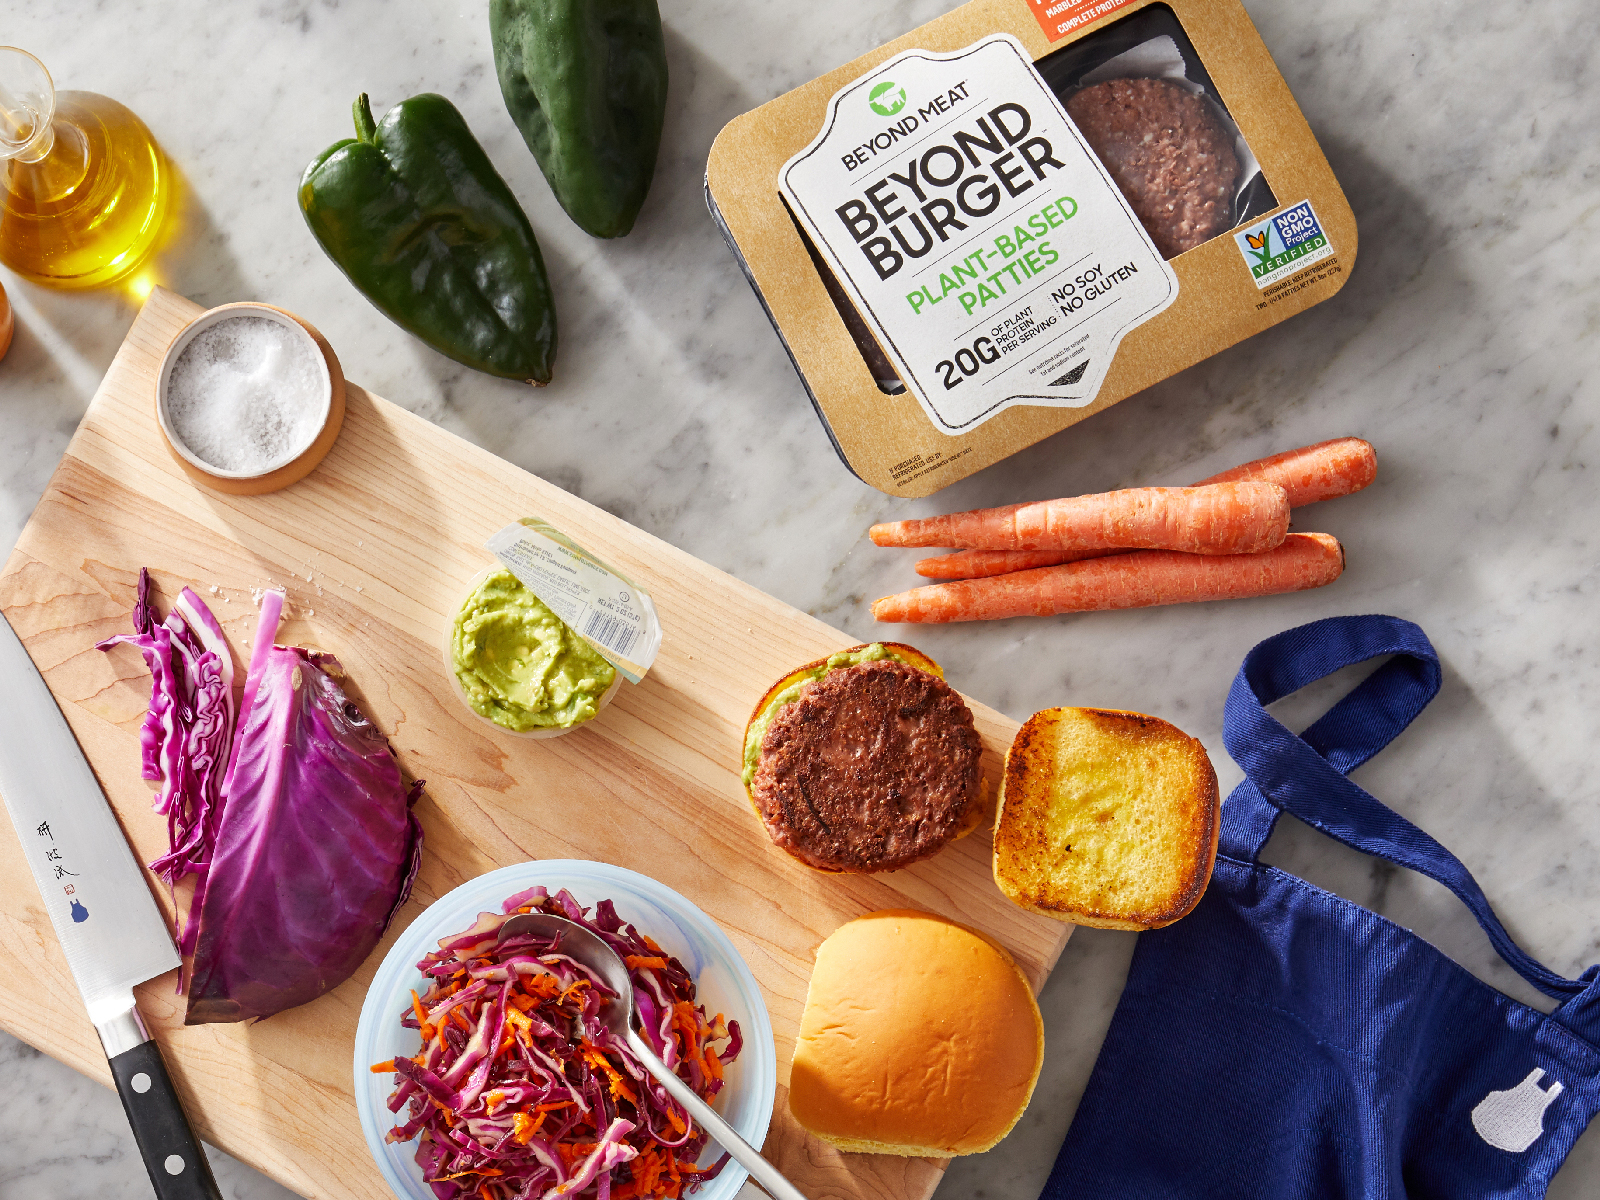 Blue Apron Adds Beyond Meat Options to Meal Kits